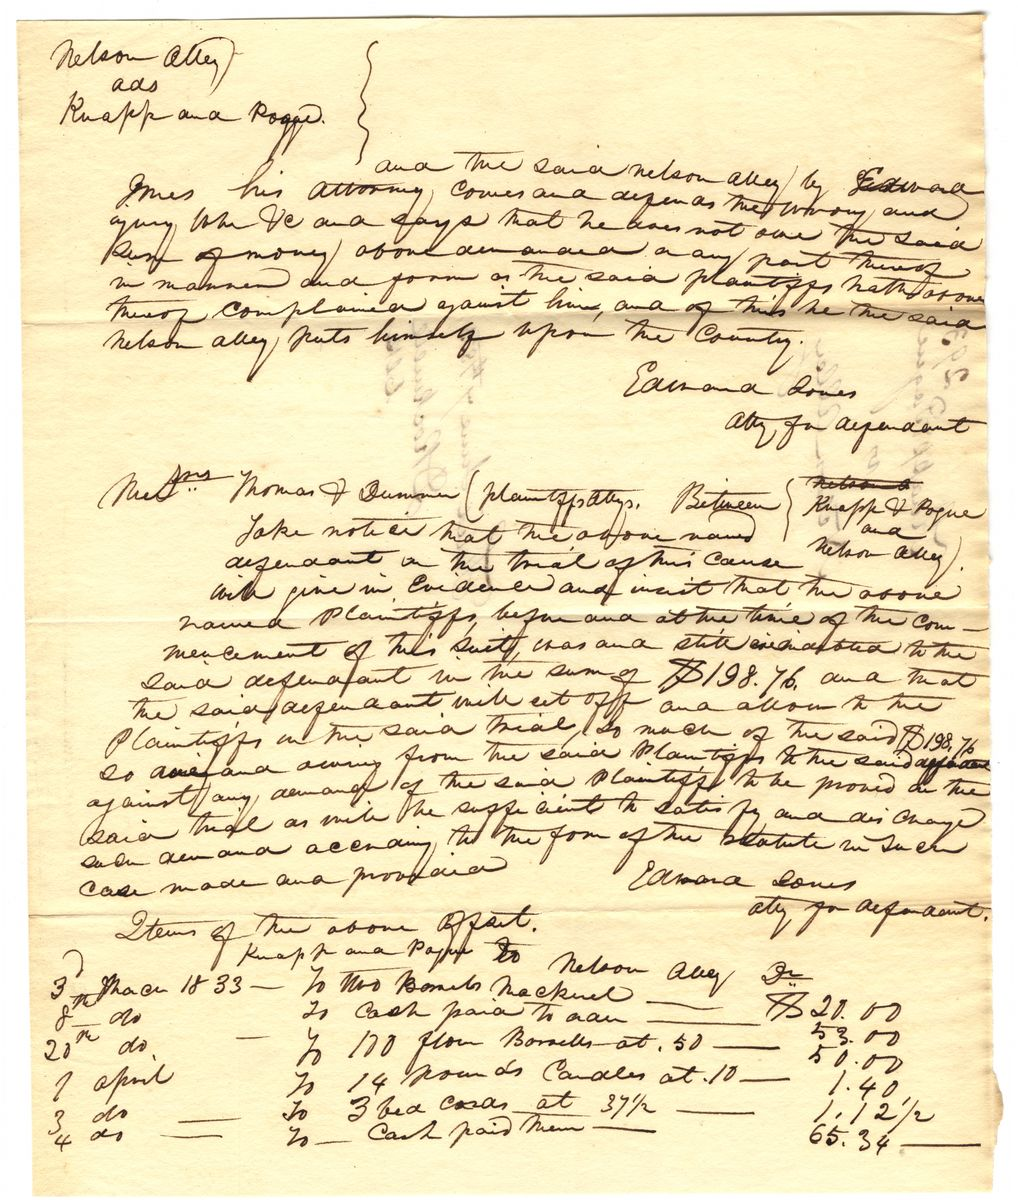 Image: Declaration in Augustus Knapp & Thomas Pogue vs. Nelson Alley